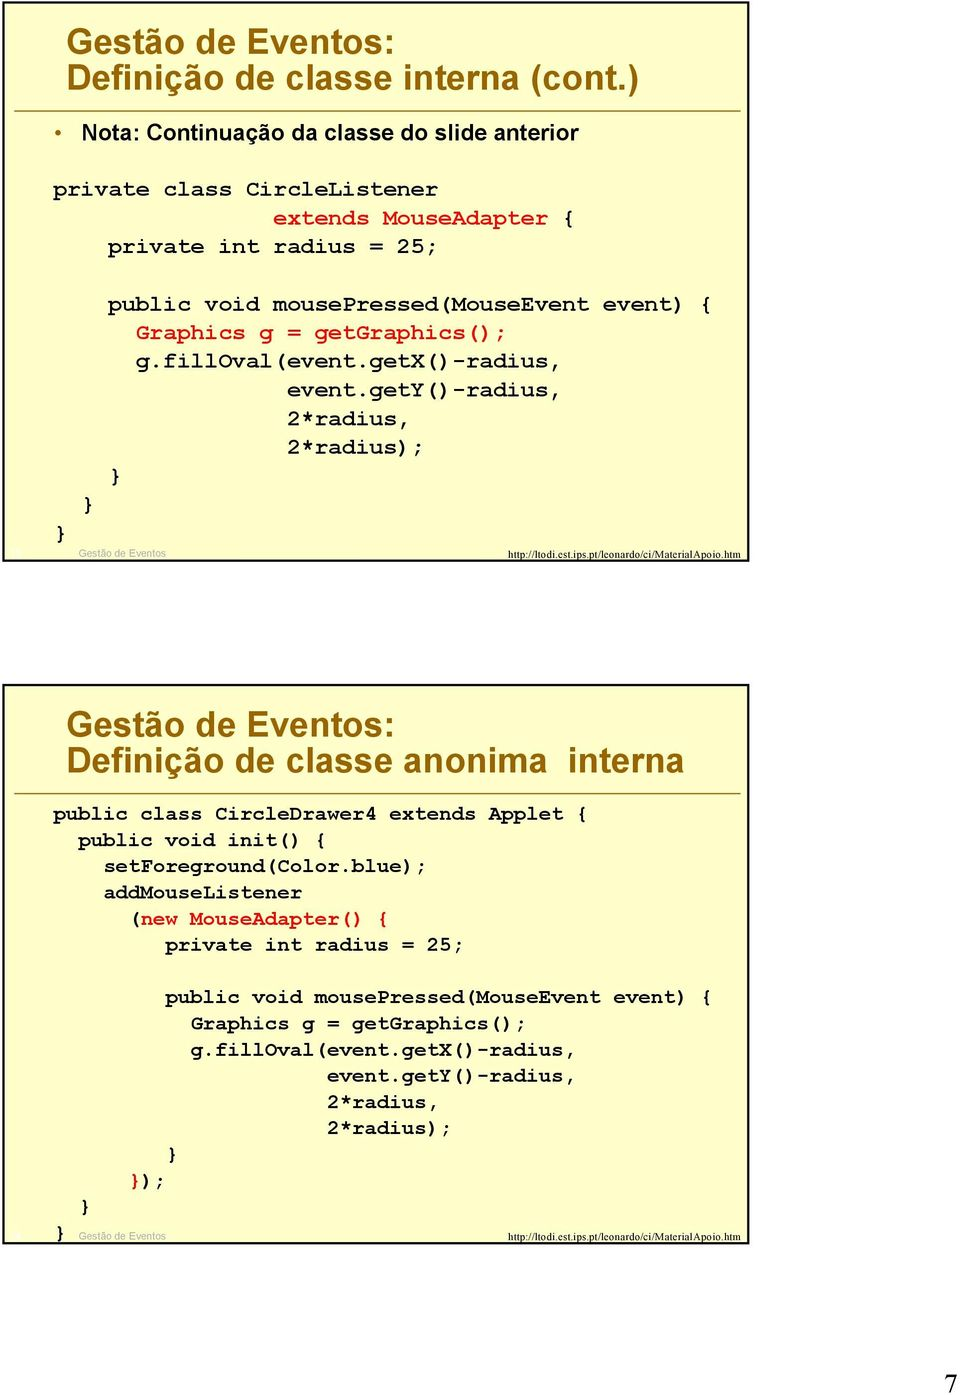 Graphics g = getgraphics(); g.filloval(event.getx()-radius, event.